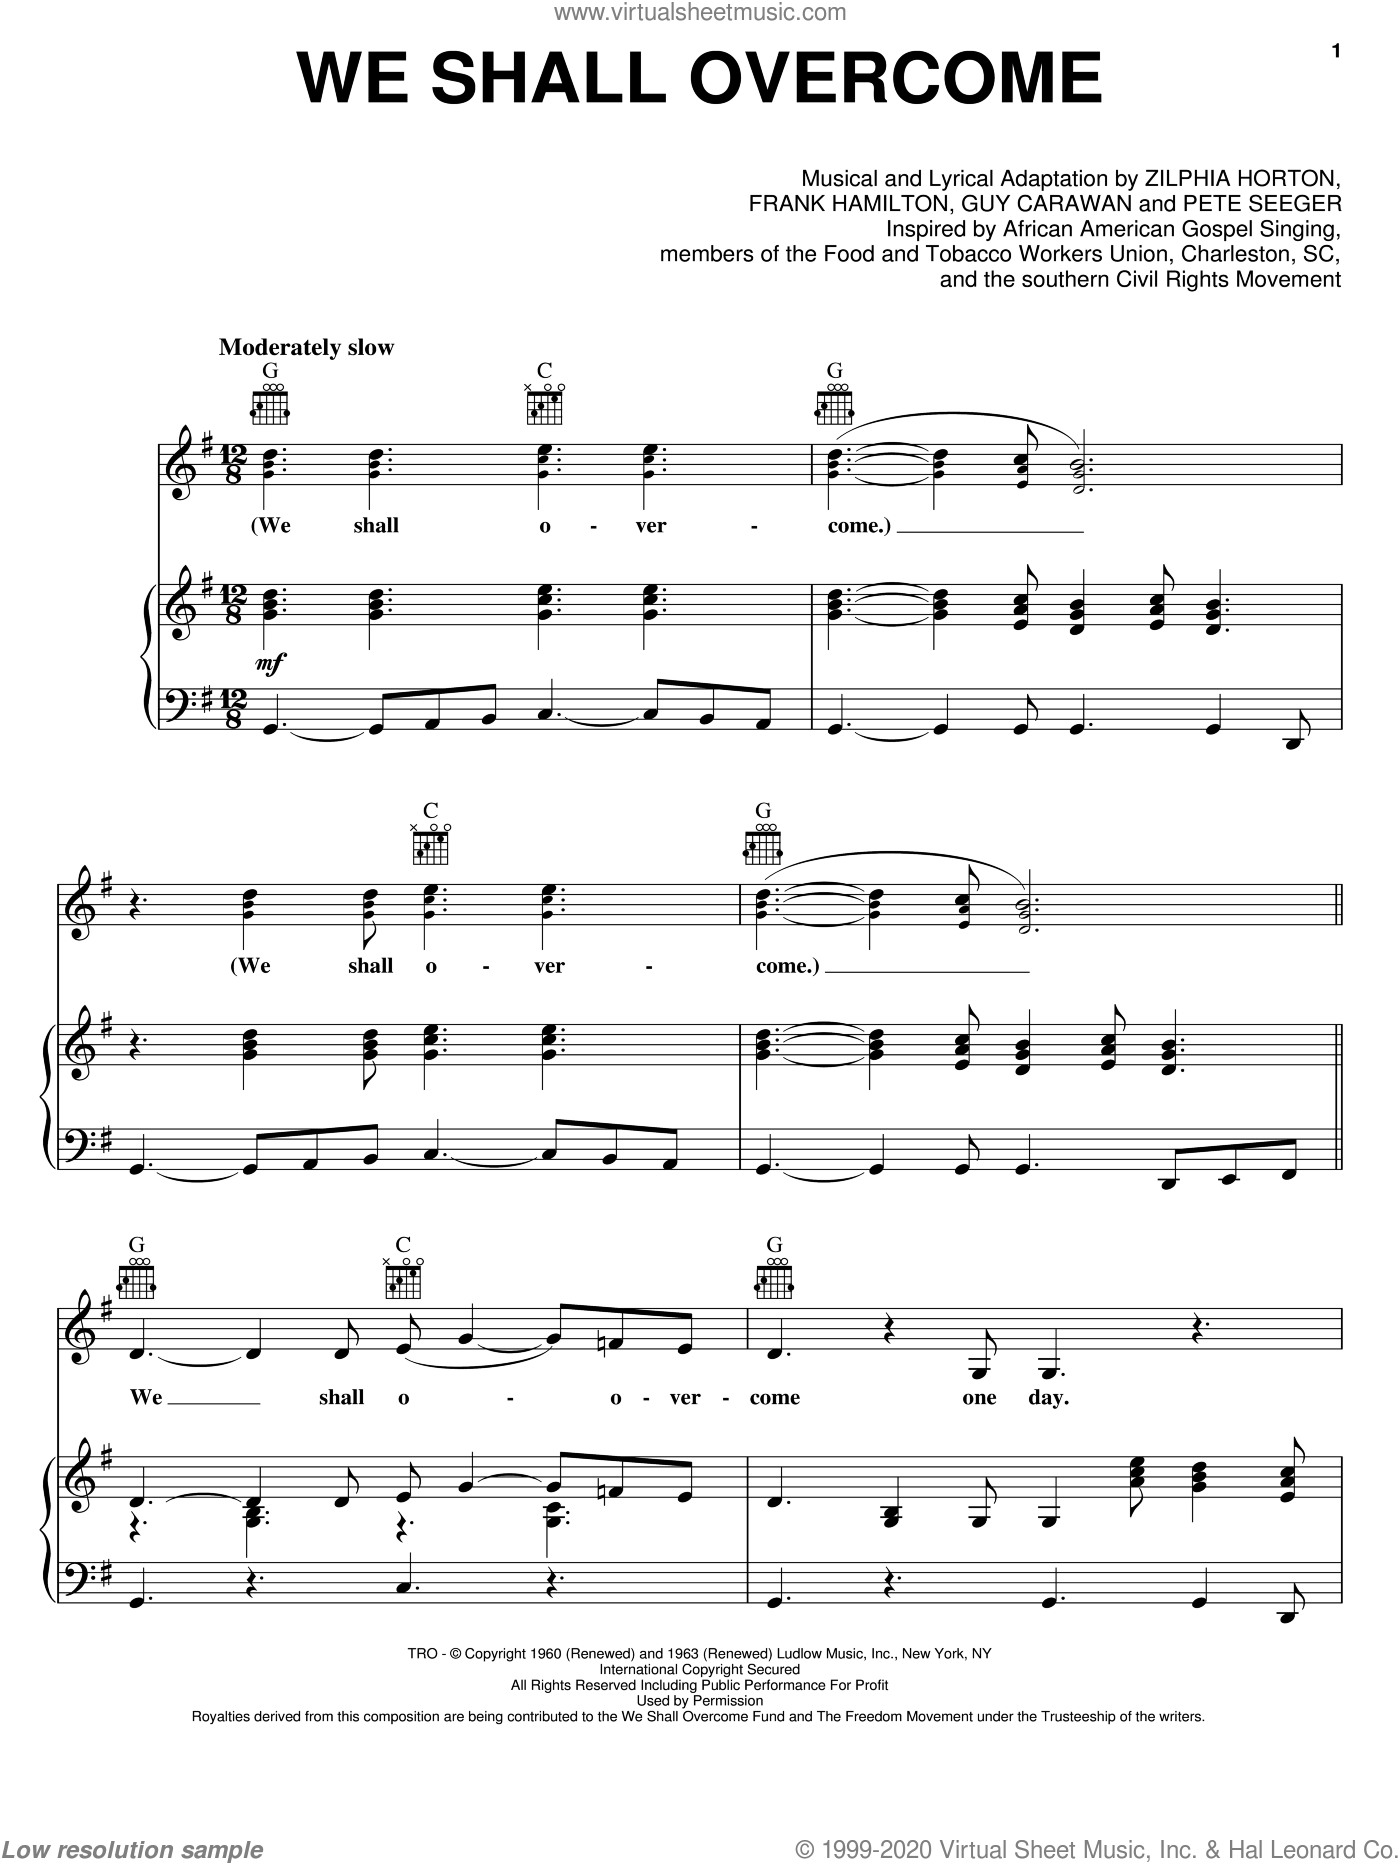 We Shall Overcome sheet music for voice, piano or guitar by Zilphia Horton